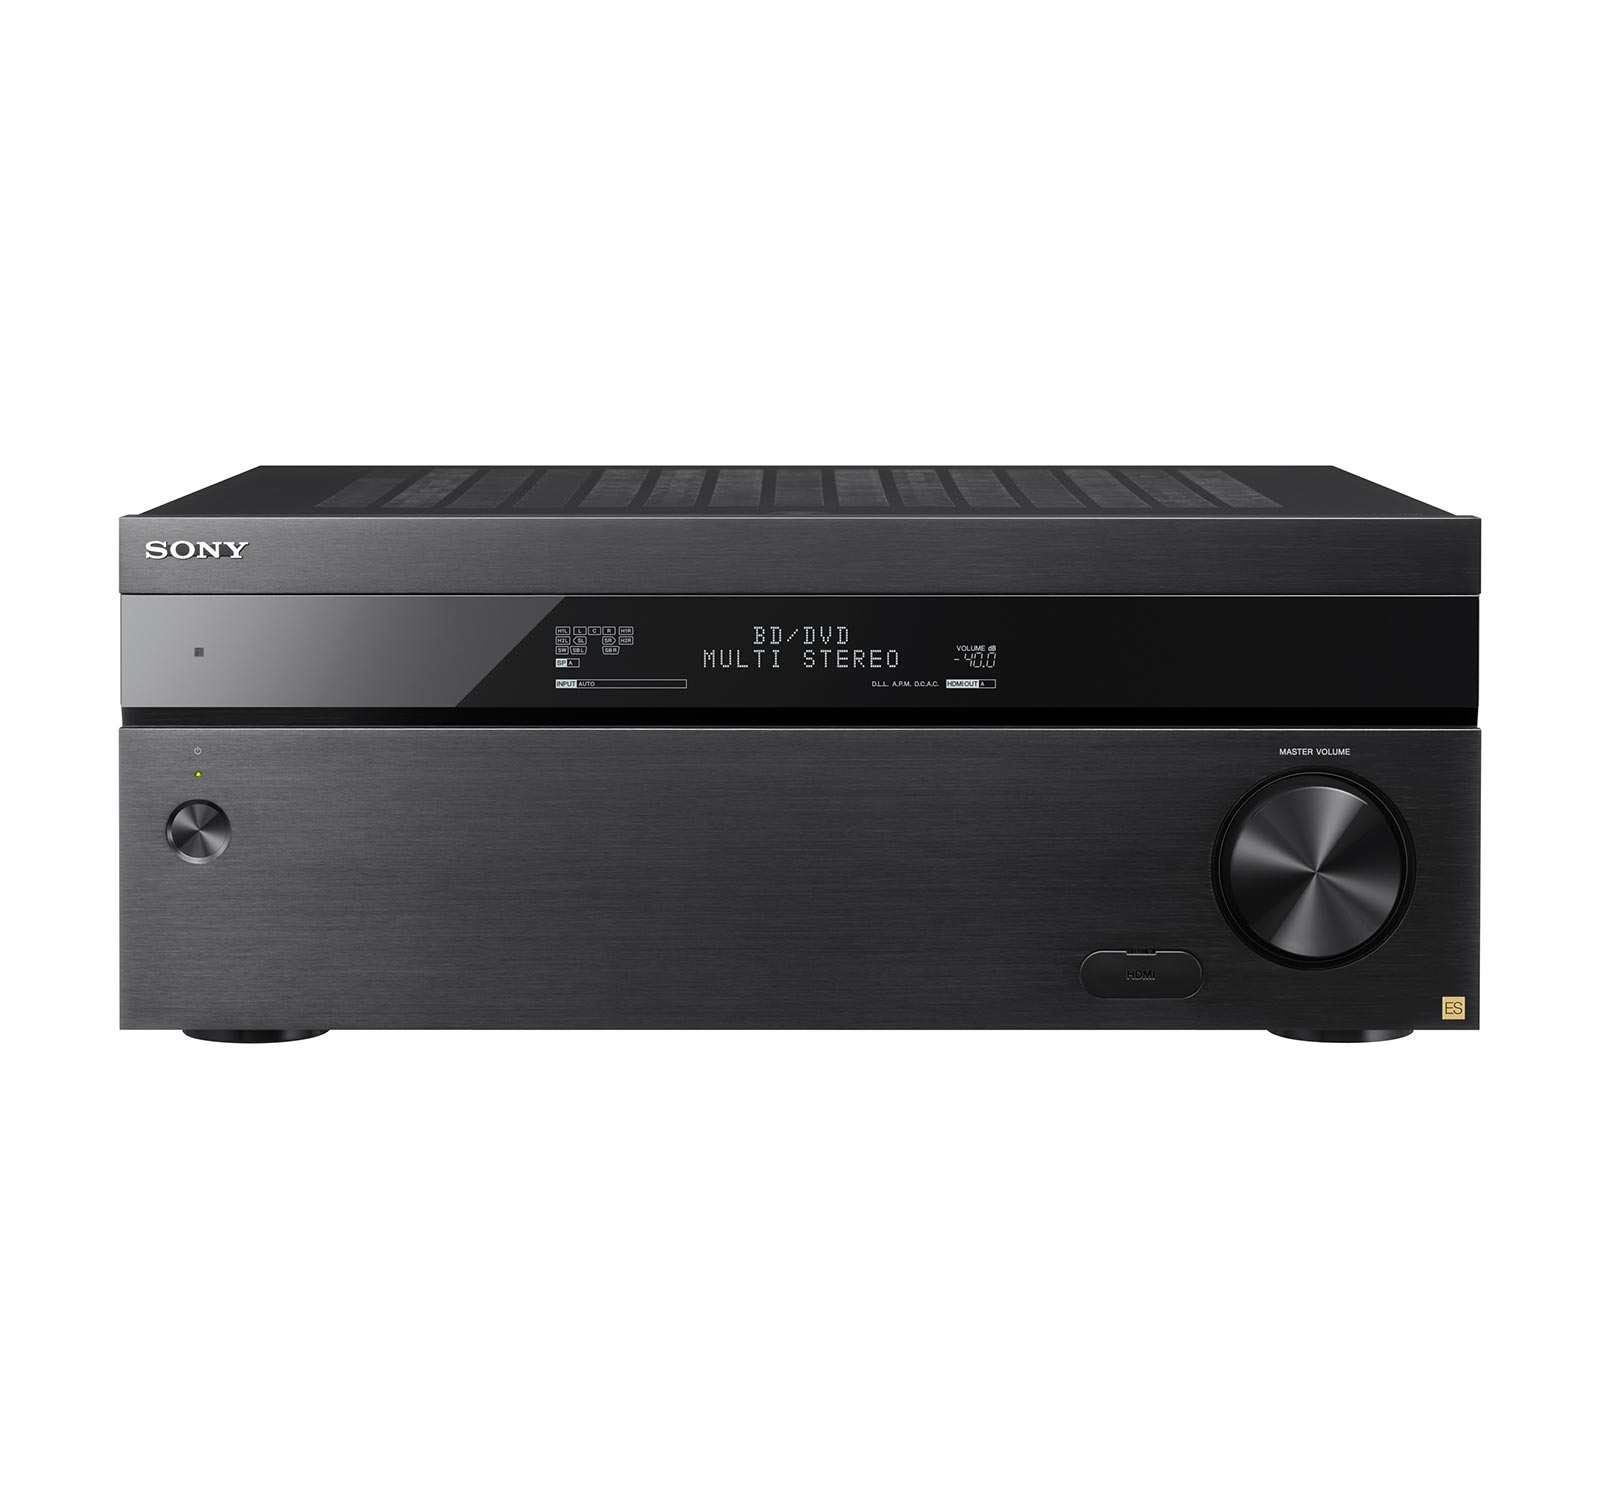 Sony STRZA5000ES 9.2-channel AV Receiver